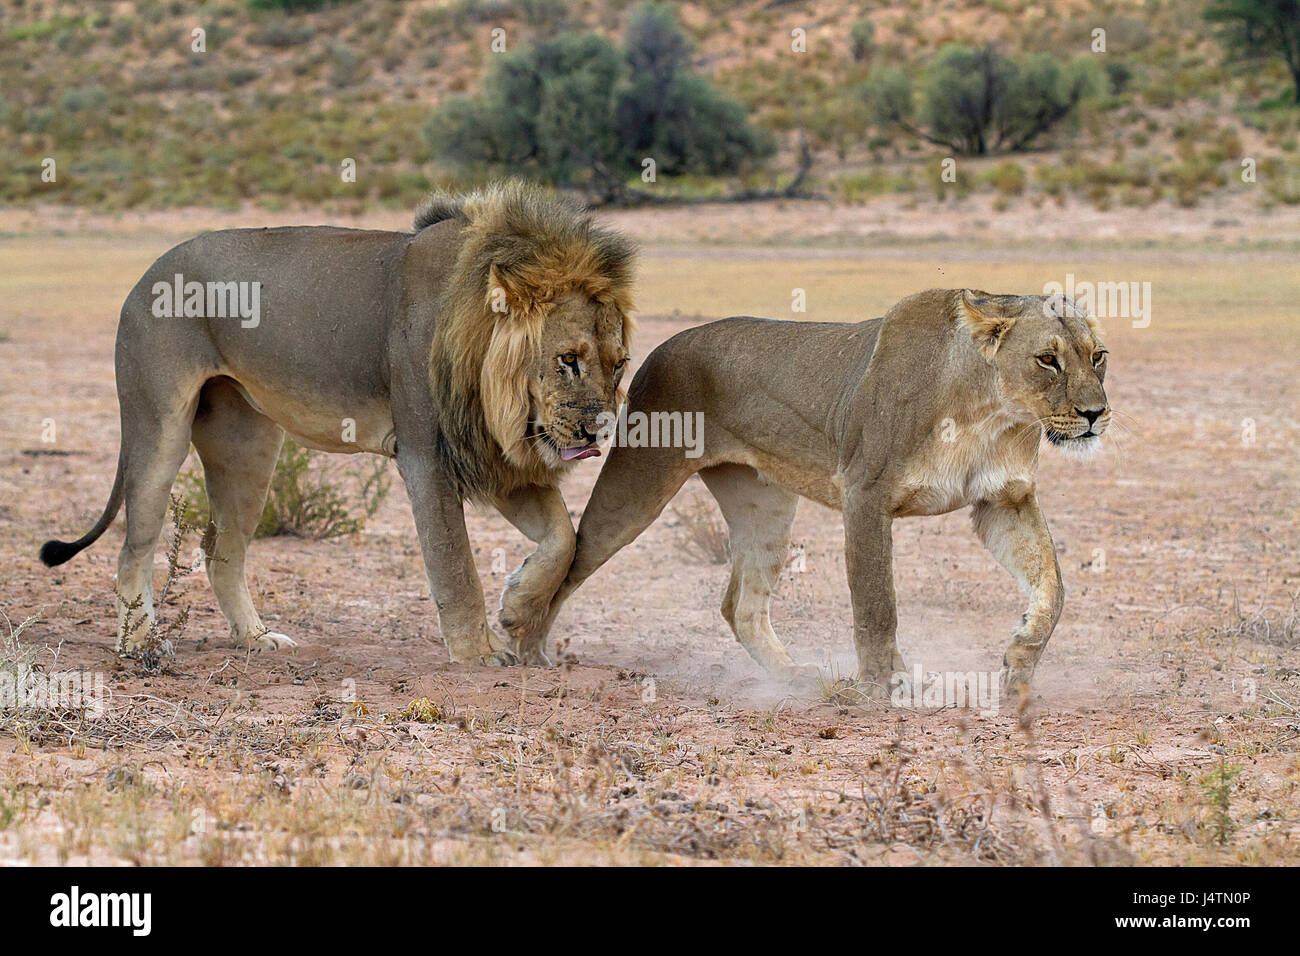 African lions in the Kgalagadi Transfrontier Park, Botswana - Stock Image